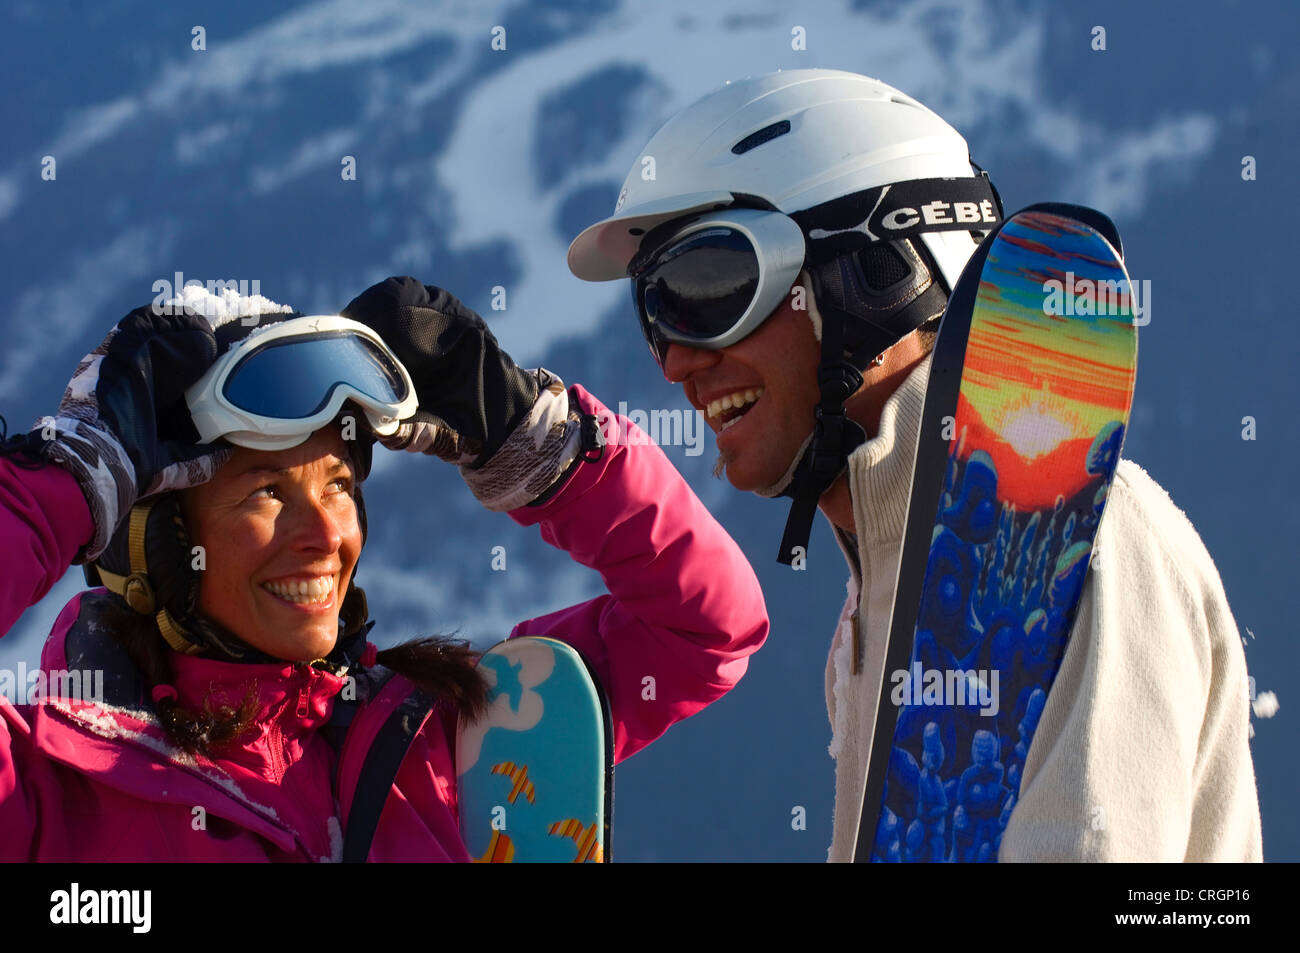 couple with skis, helmets and ski goggles in the Alps, France - Stock Image